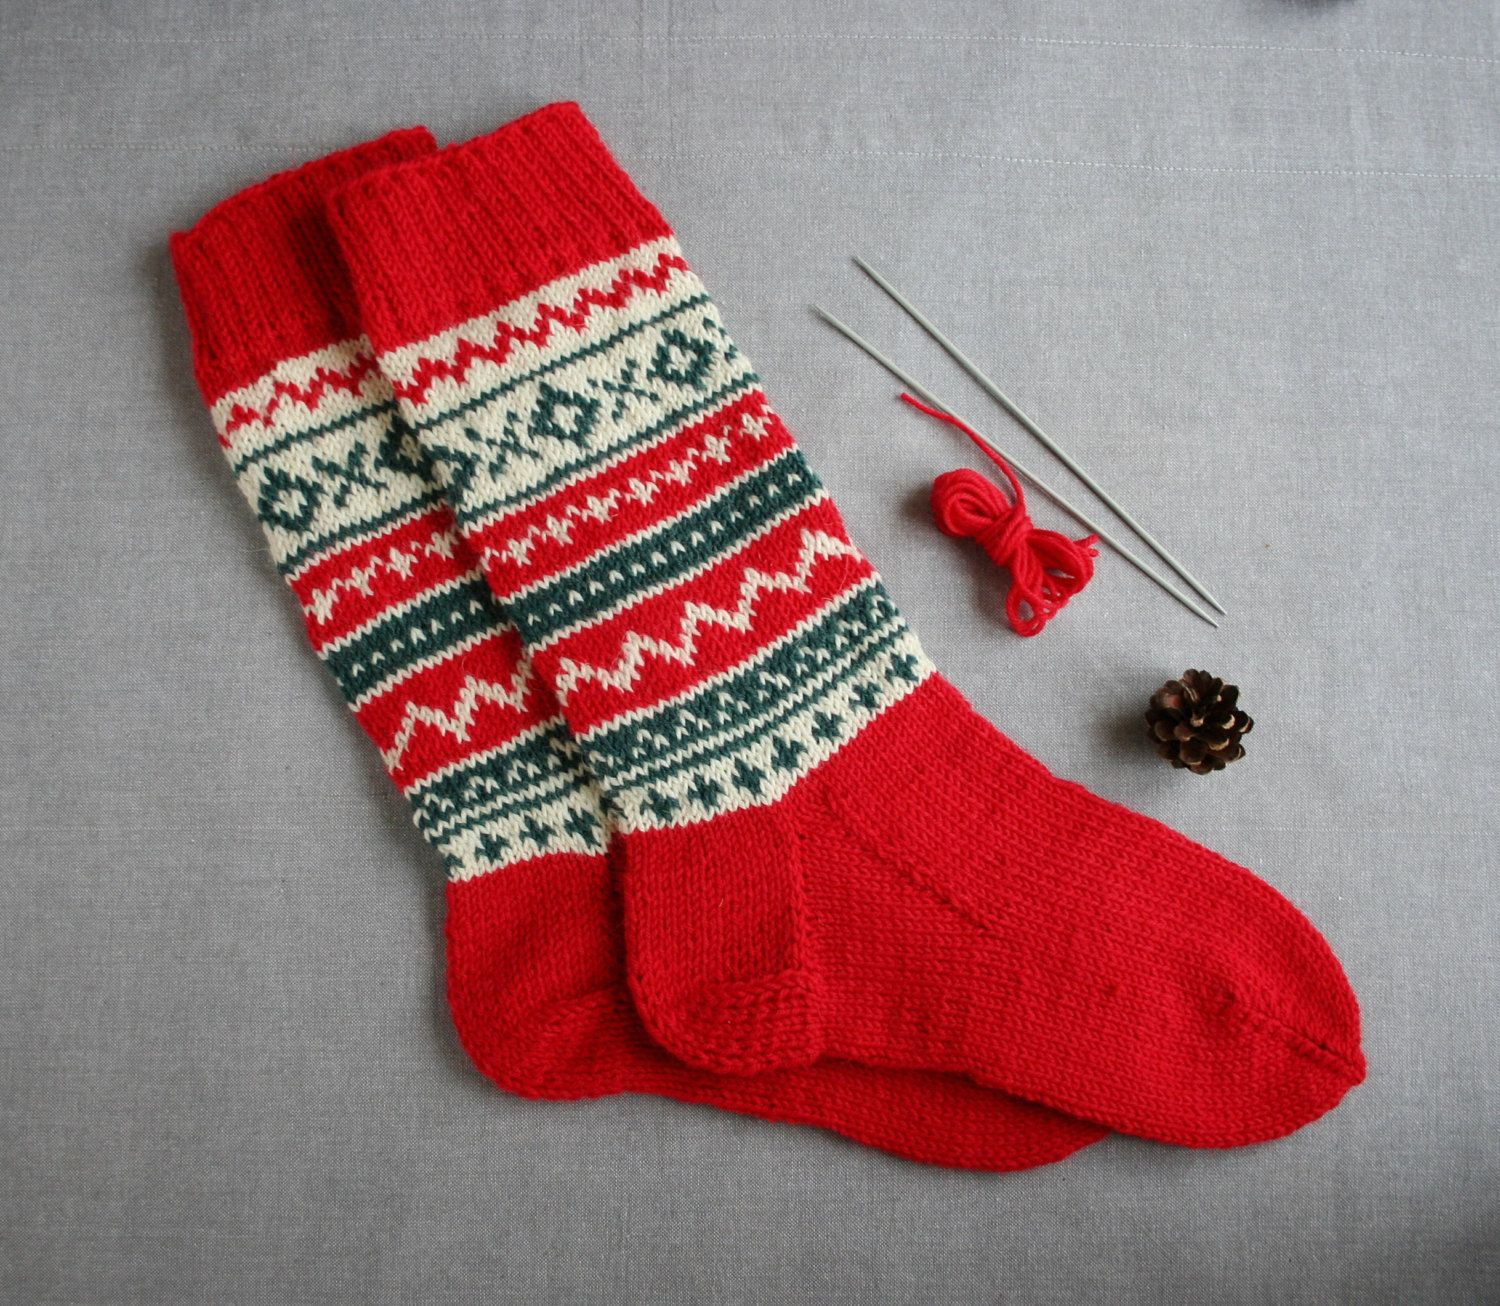 Christmas stockings christmas socks fair isle stockings fair christmas stockings christmas socks fair isle stockings fair isle socks norwegian stockings bankloansurffo Choice Image